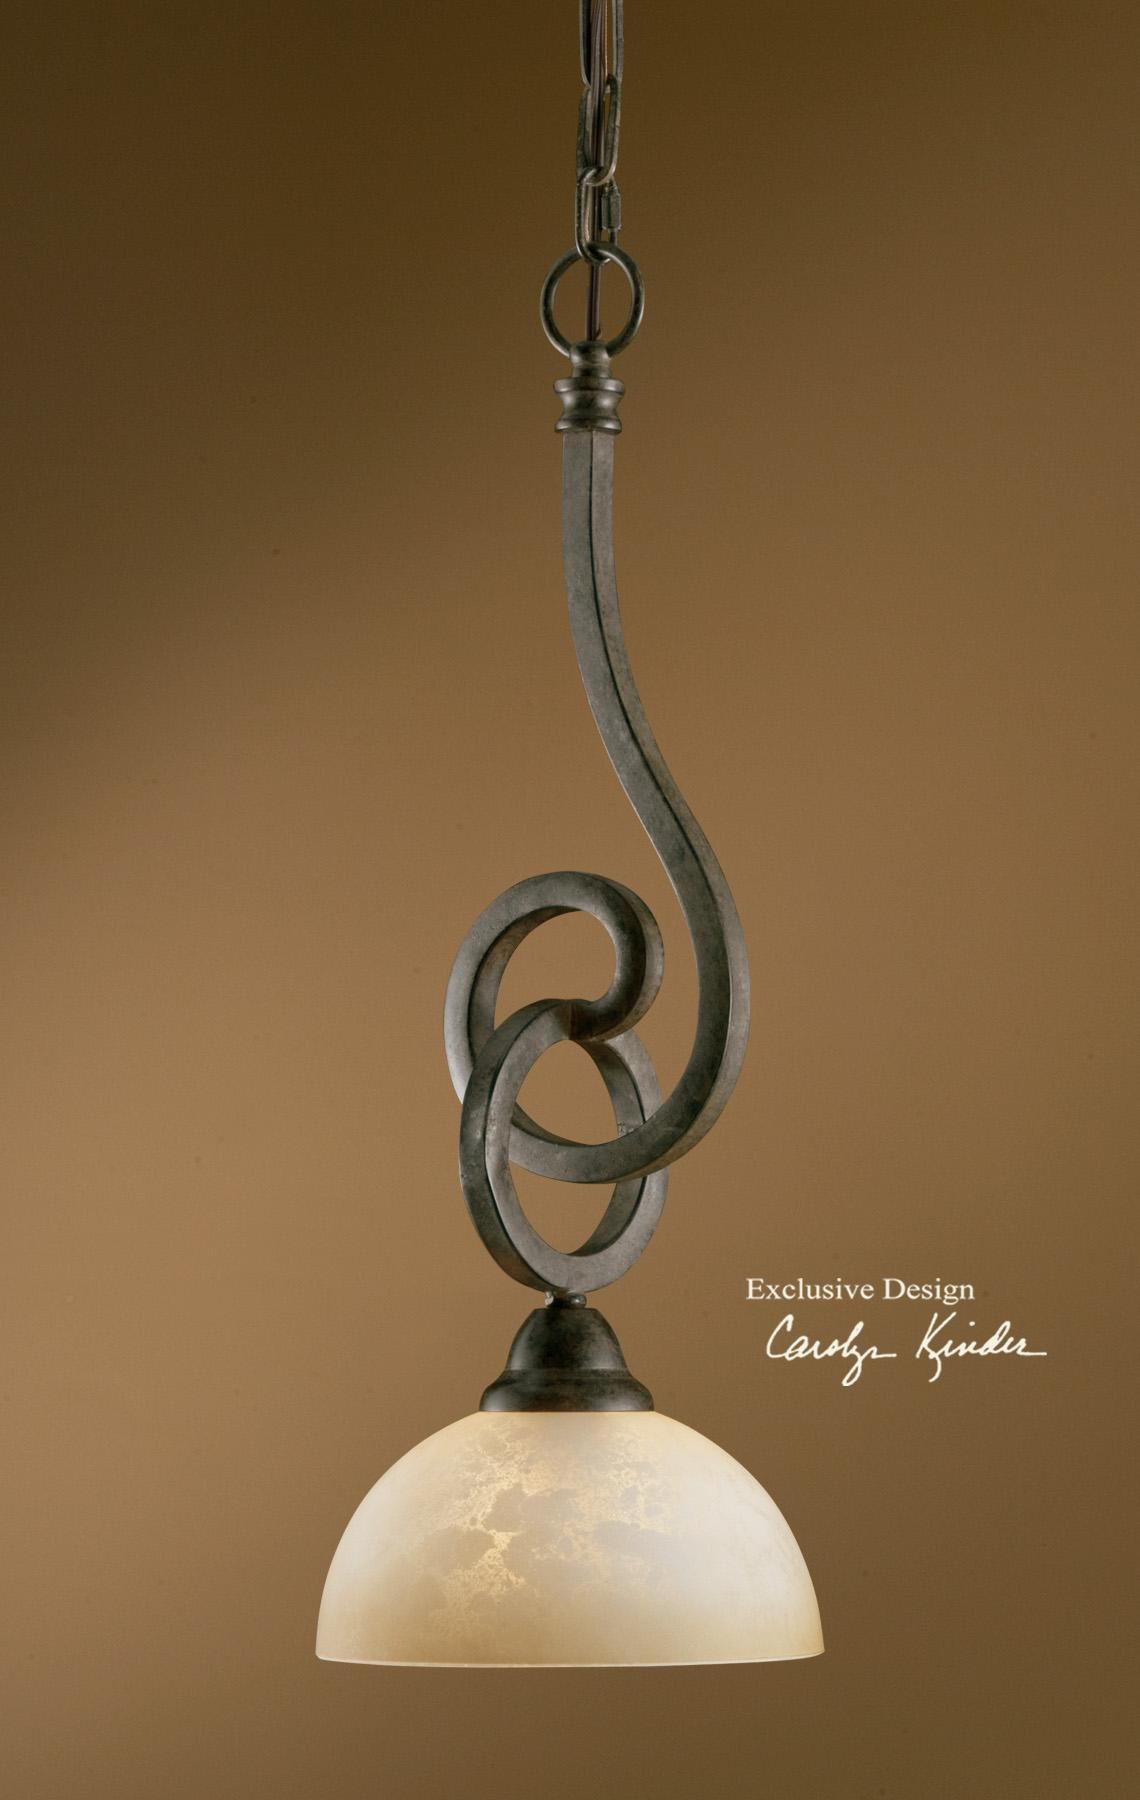 Uttermost Lighting Fixtures Legato Mini Pendant - Item Number: 21828